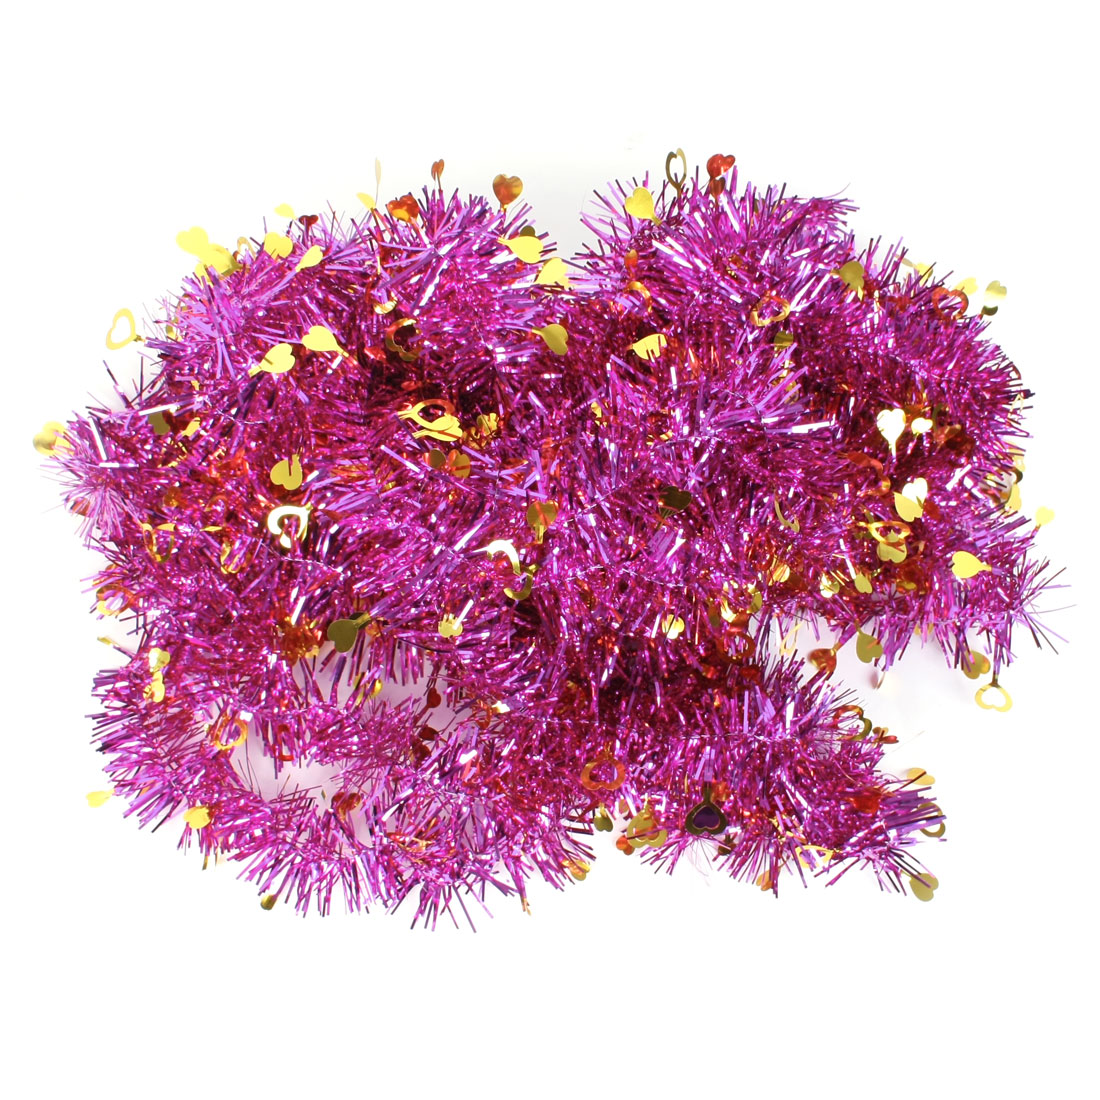 Heart Decor Fushcia Gold Tone Sparkly Christmas Party Wedding Hanging Tinsel Garland 10 Pcs